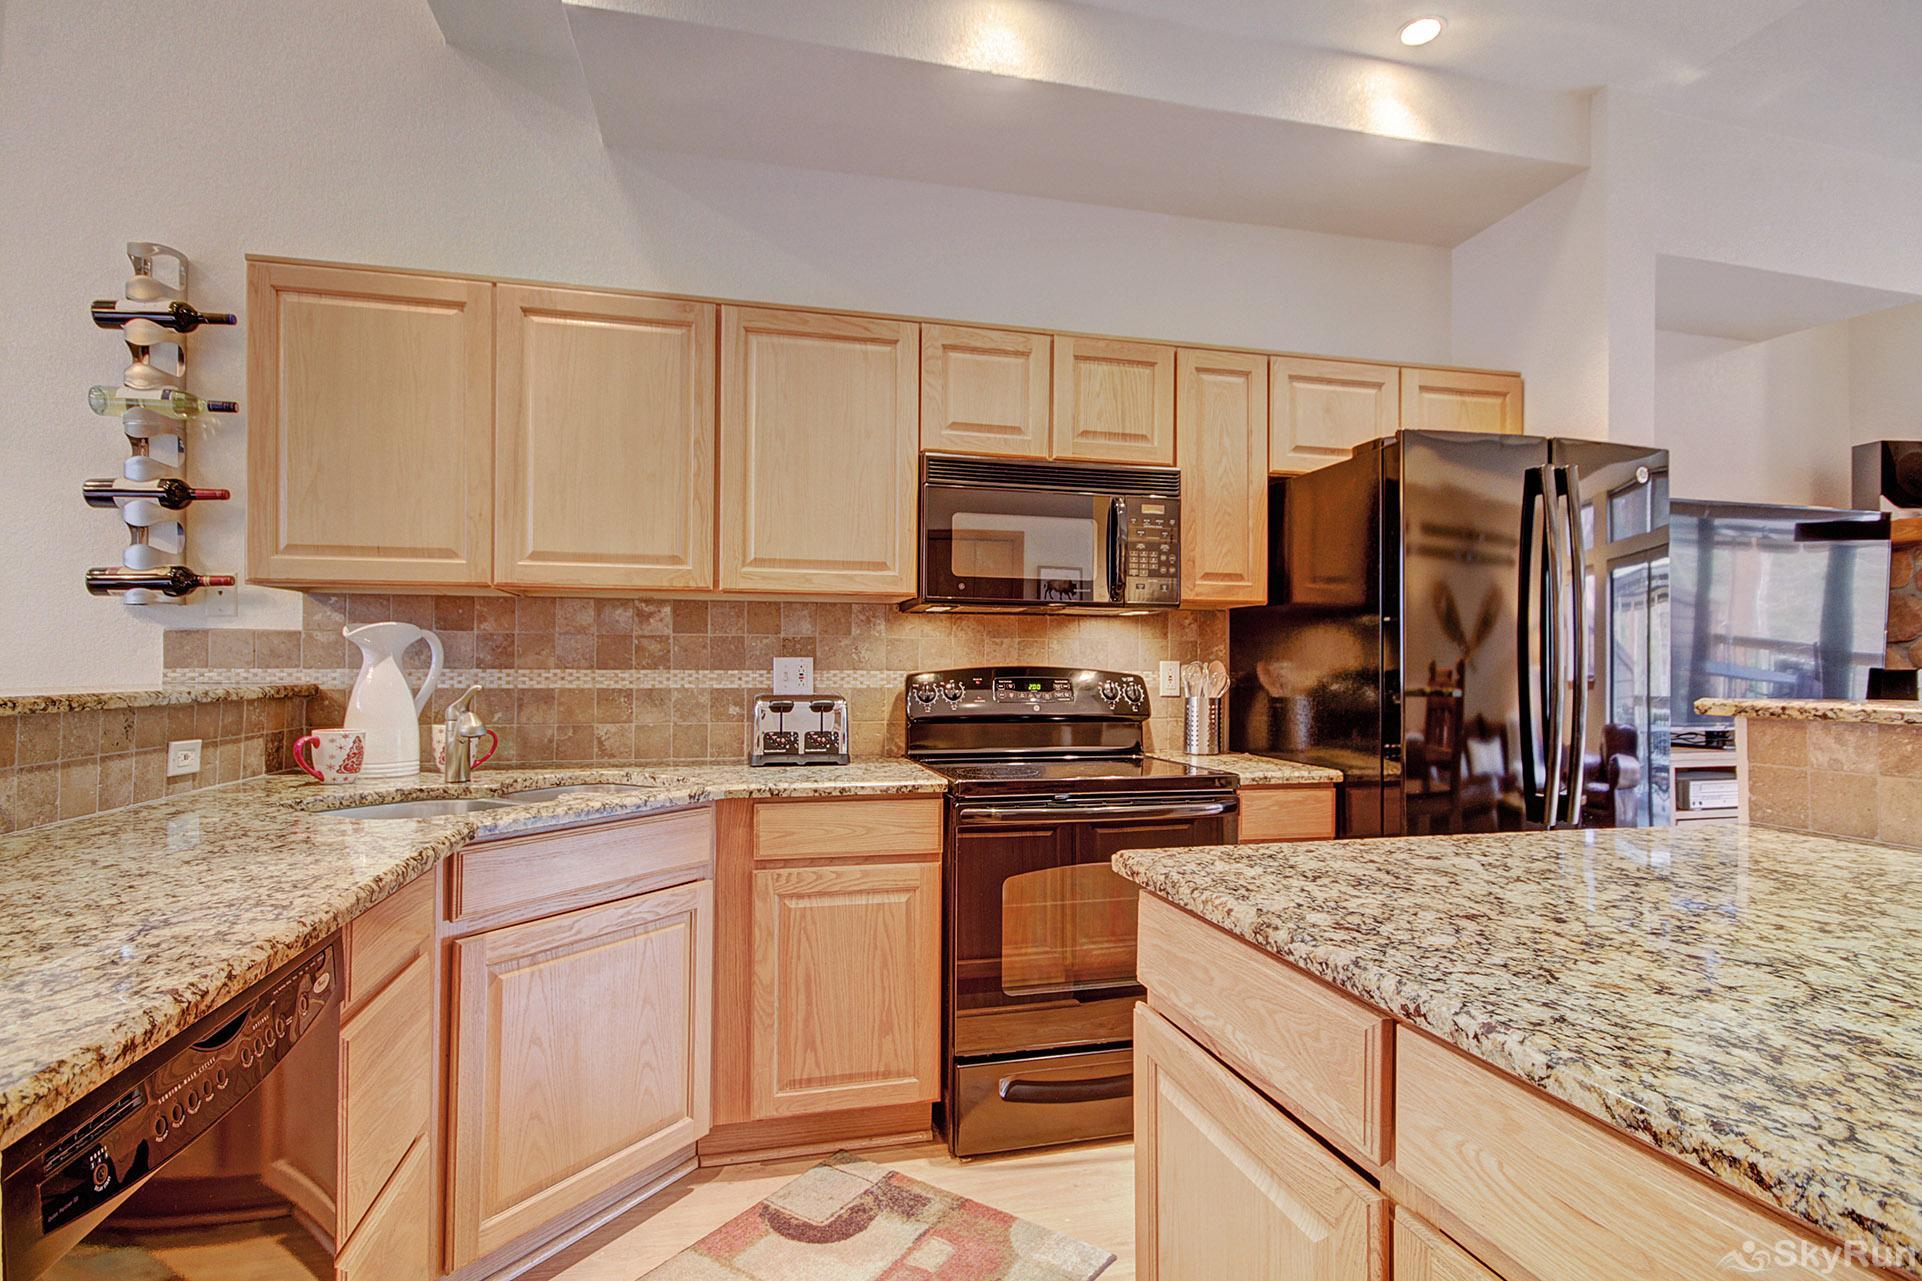 Village Point 303 Modern kitchen features beautiful granite countertops